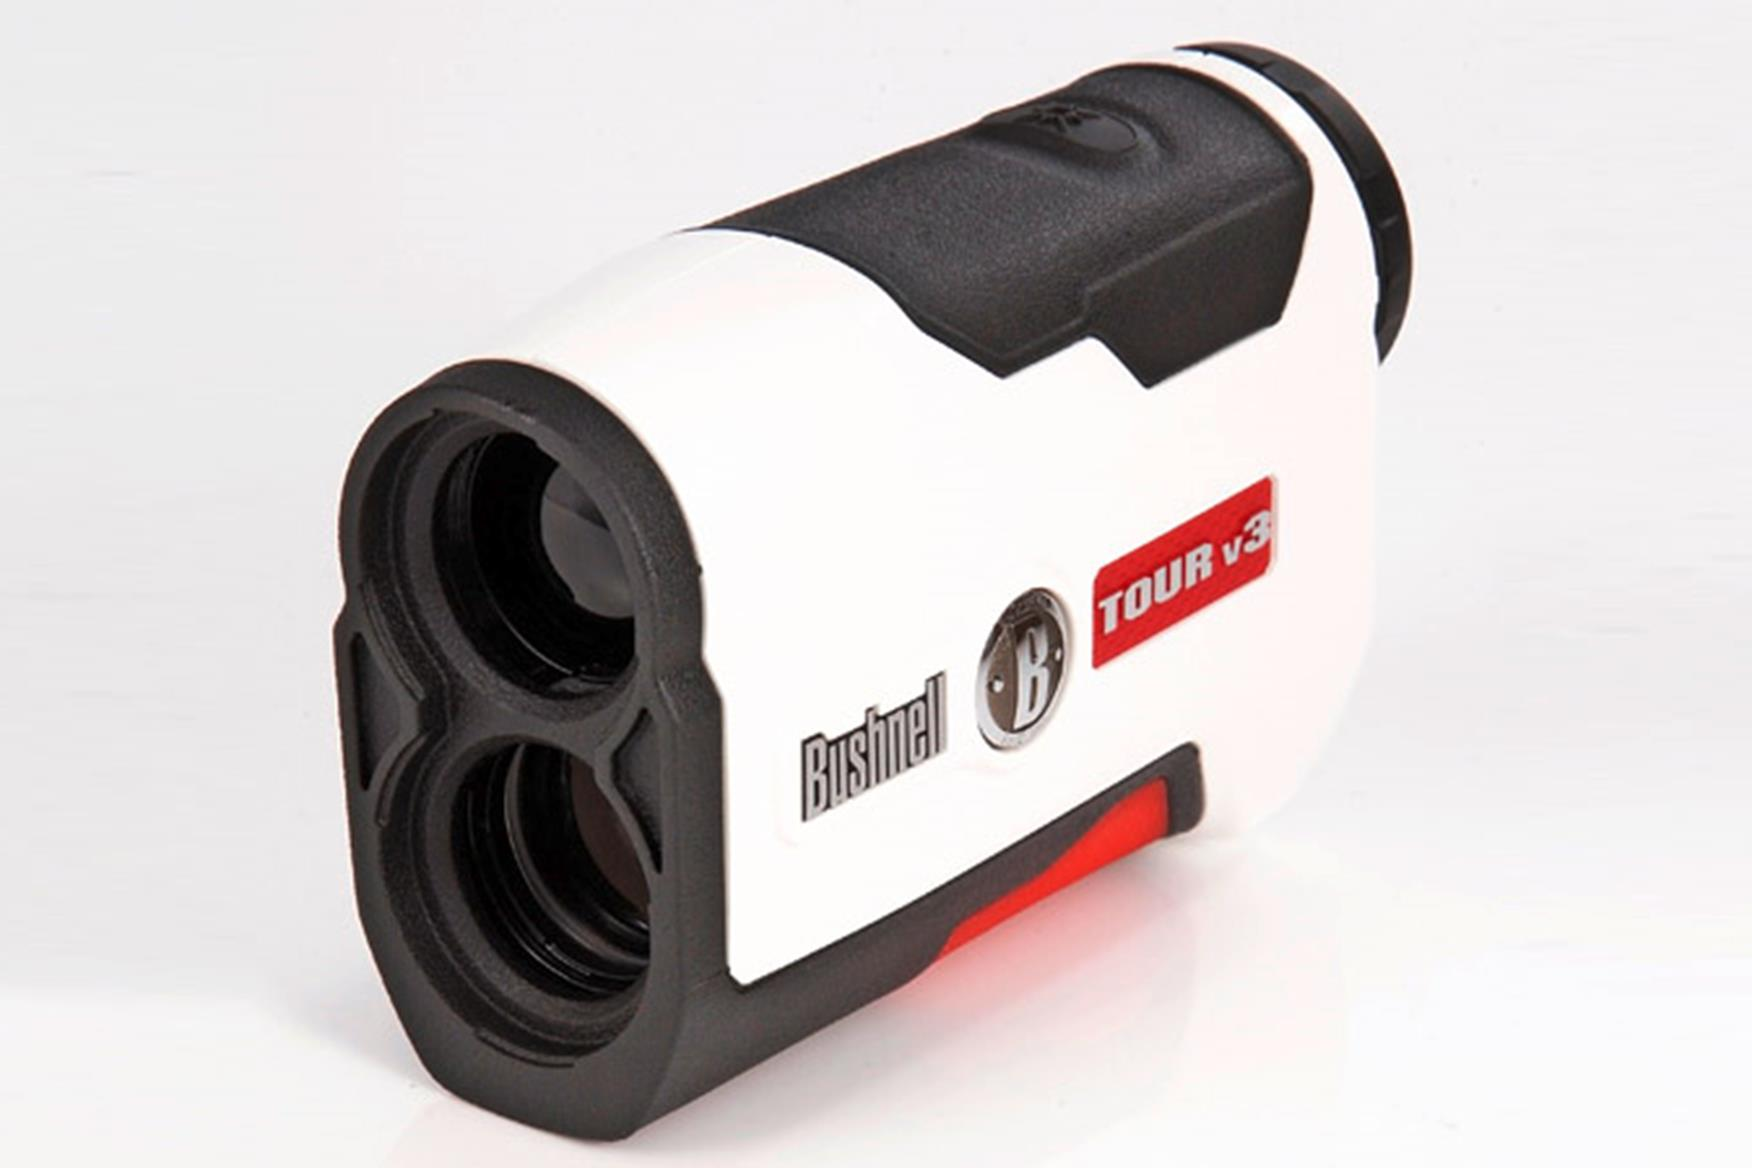 Bushnell Tour V2 Entfernungsmesser : Bushnell tour v rangefinder review equipment reviews today s